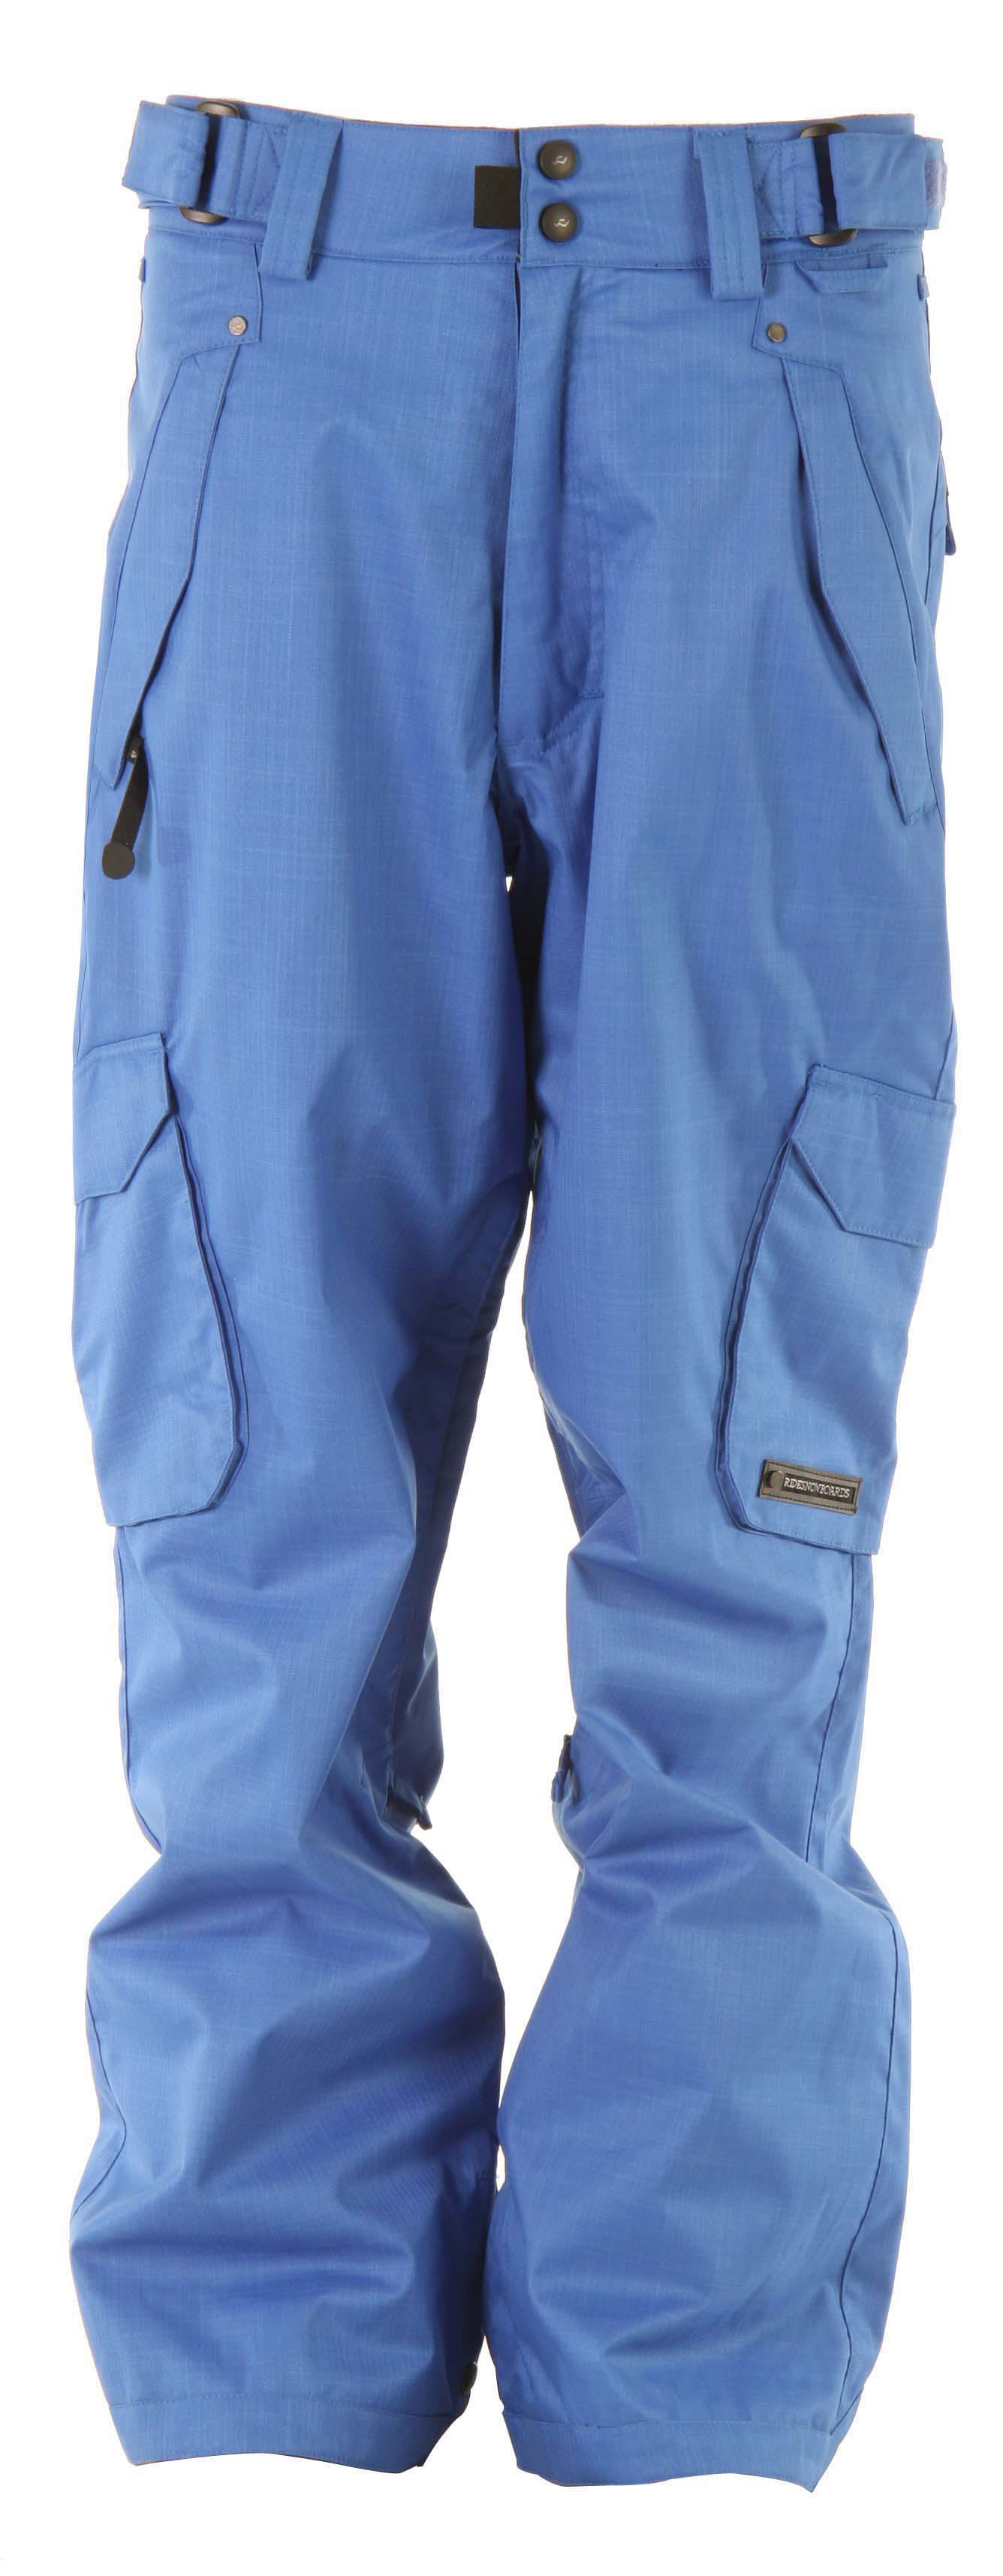 Shop for Ride Phinney Snowboard Pants Electric Blue - Men's